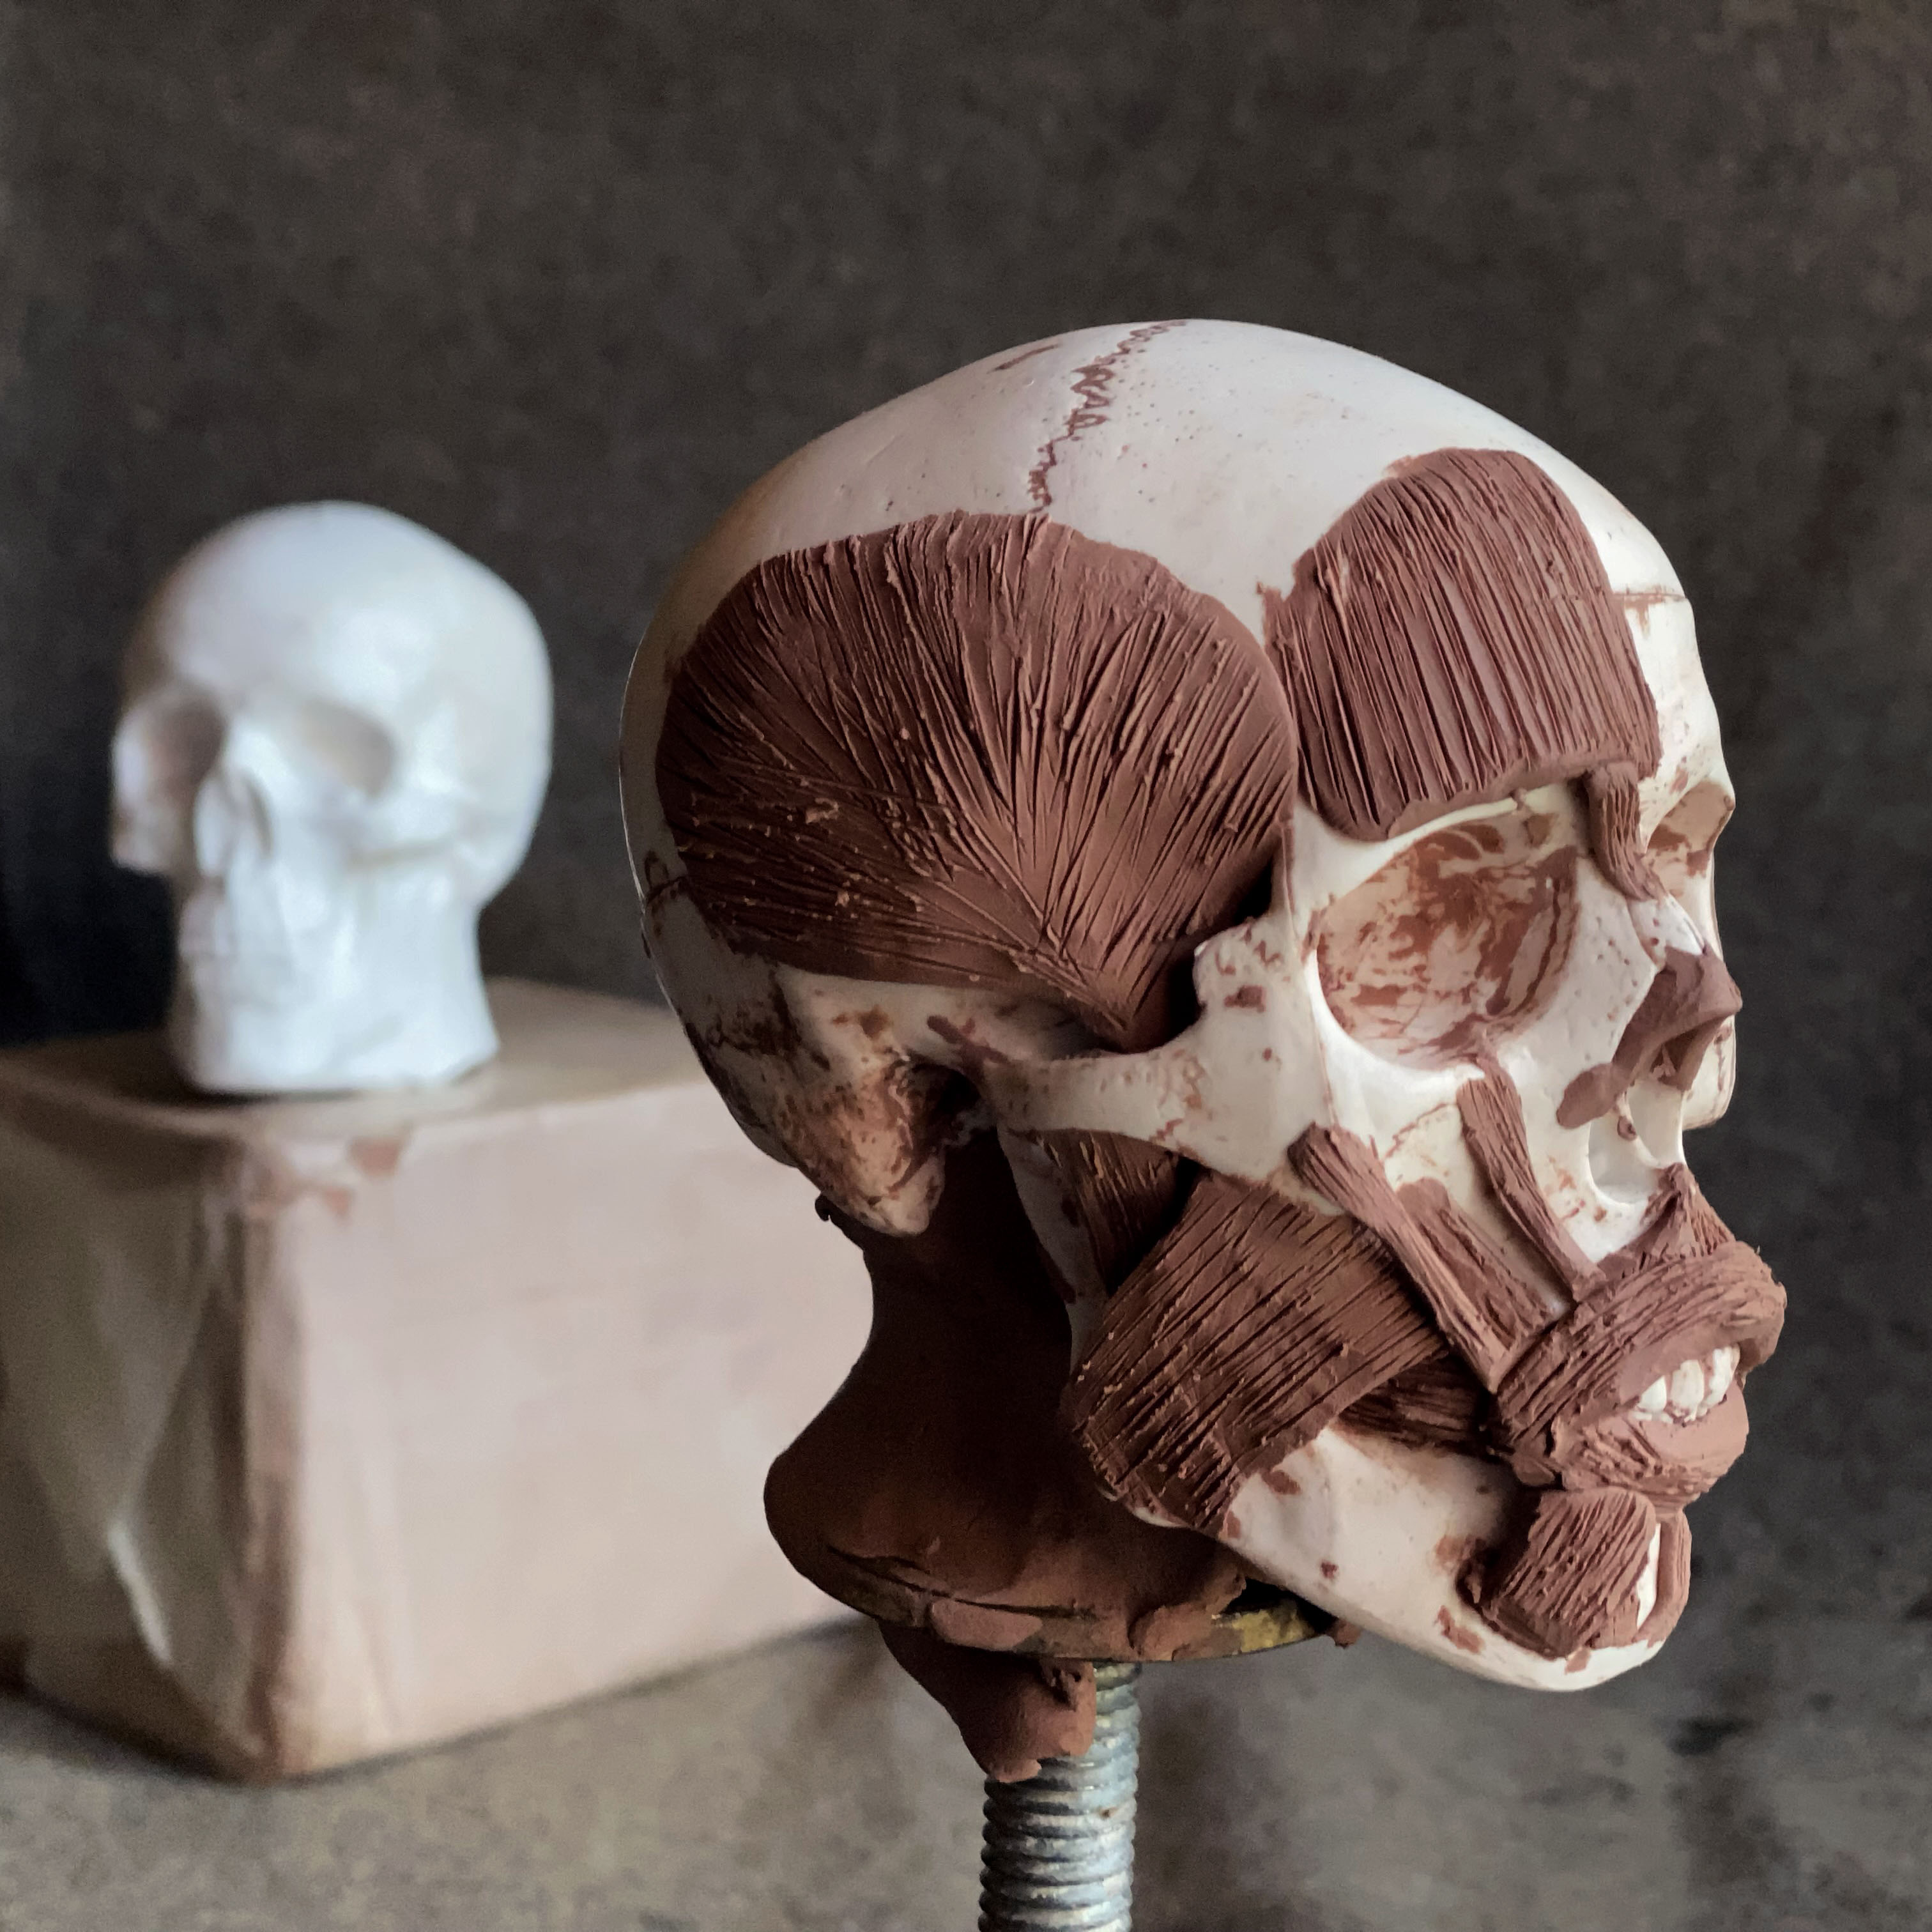 Ecorche sculpture skull with clay muscles